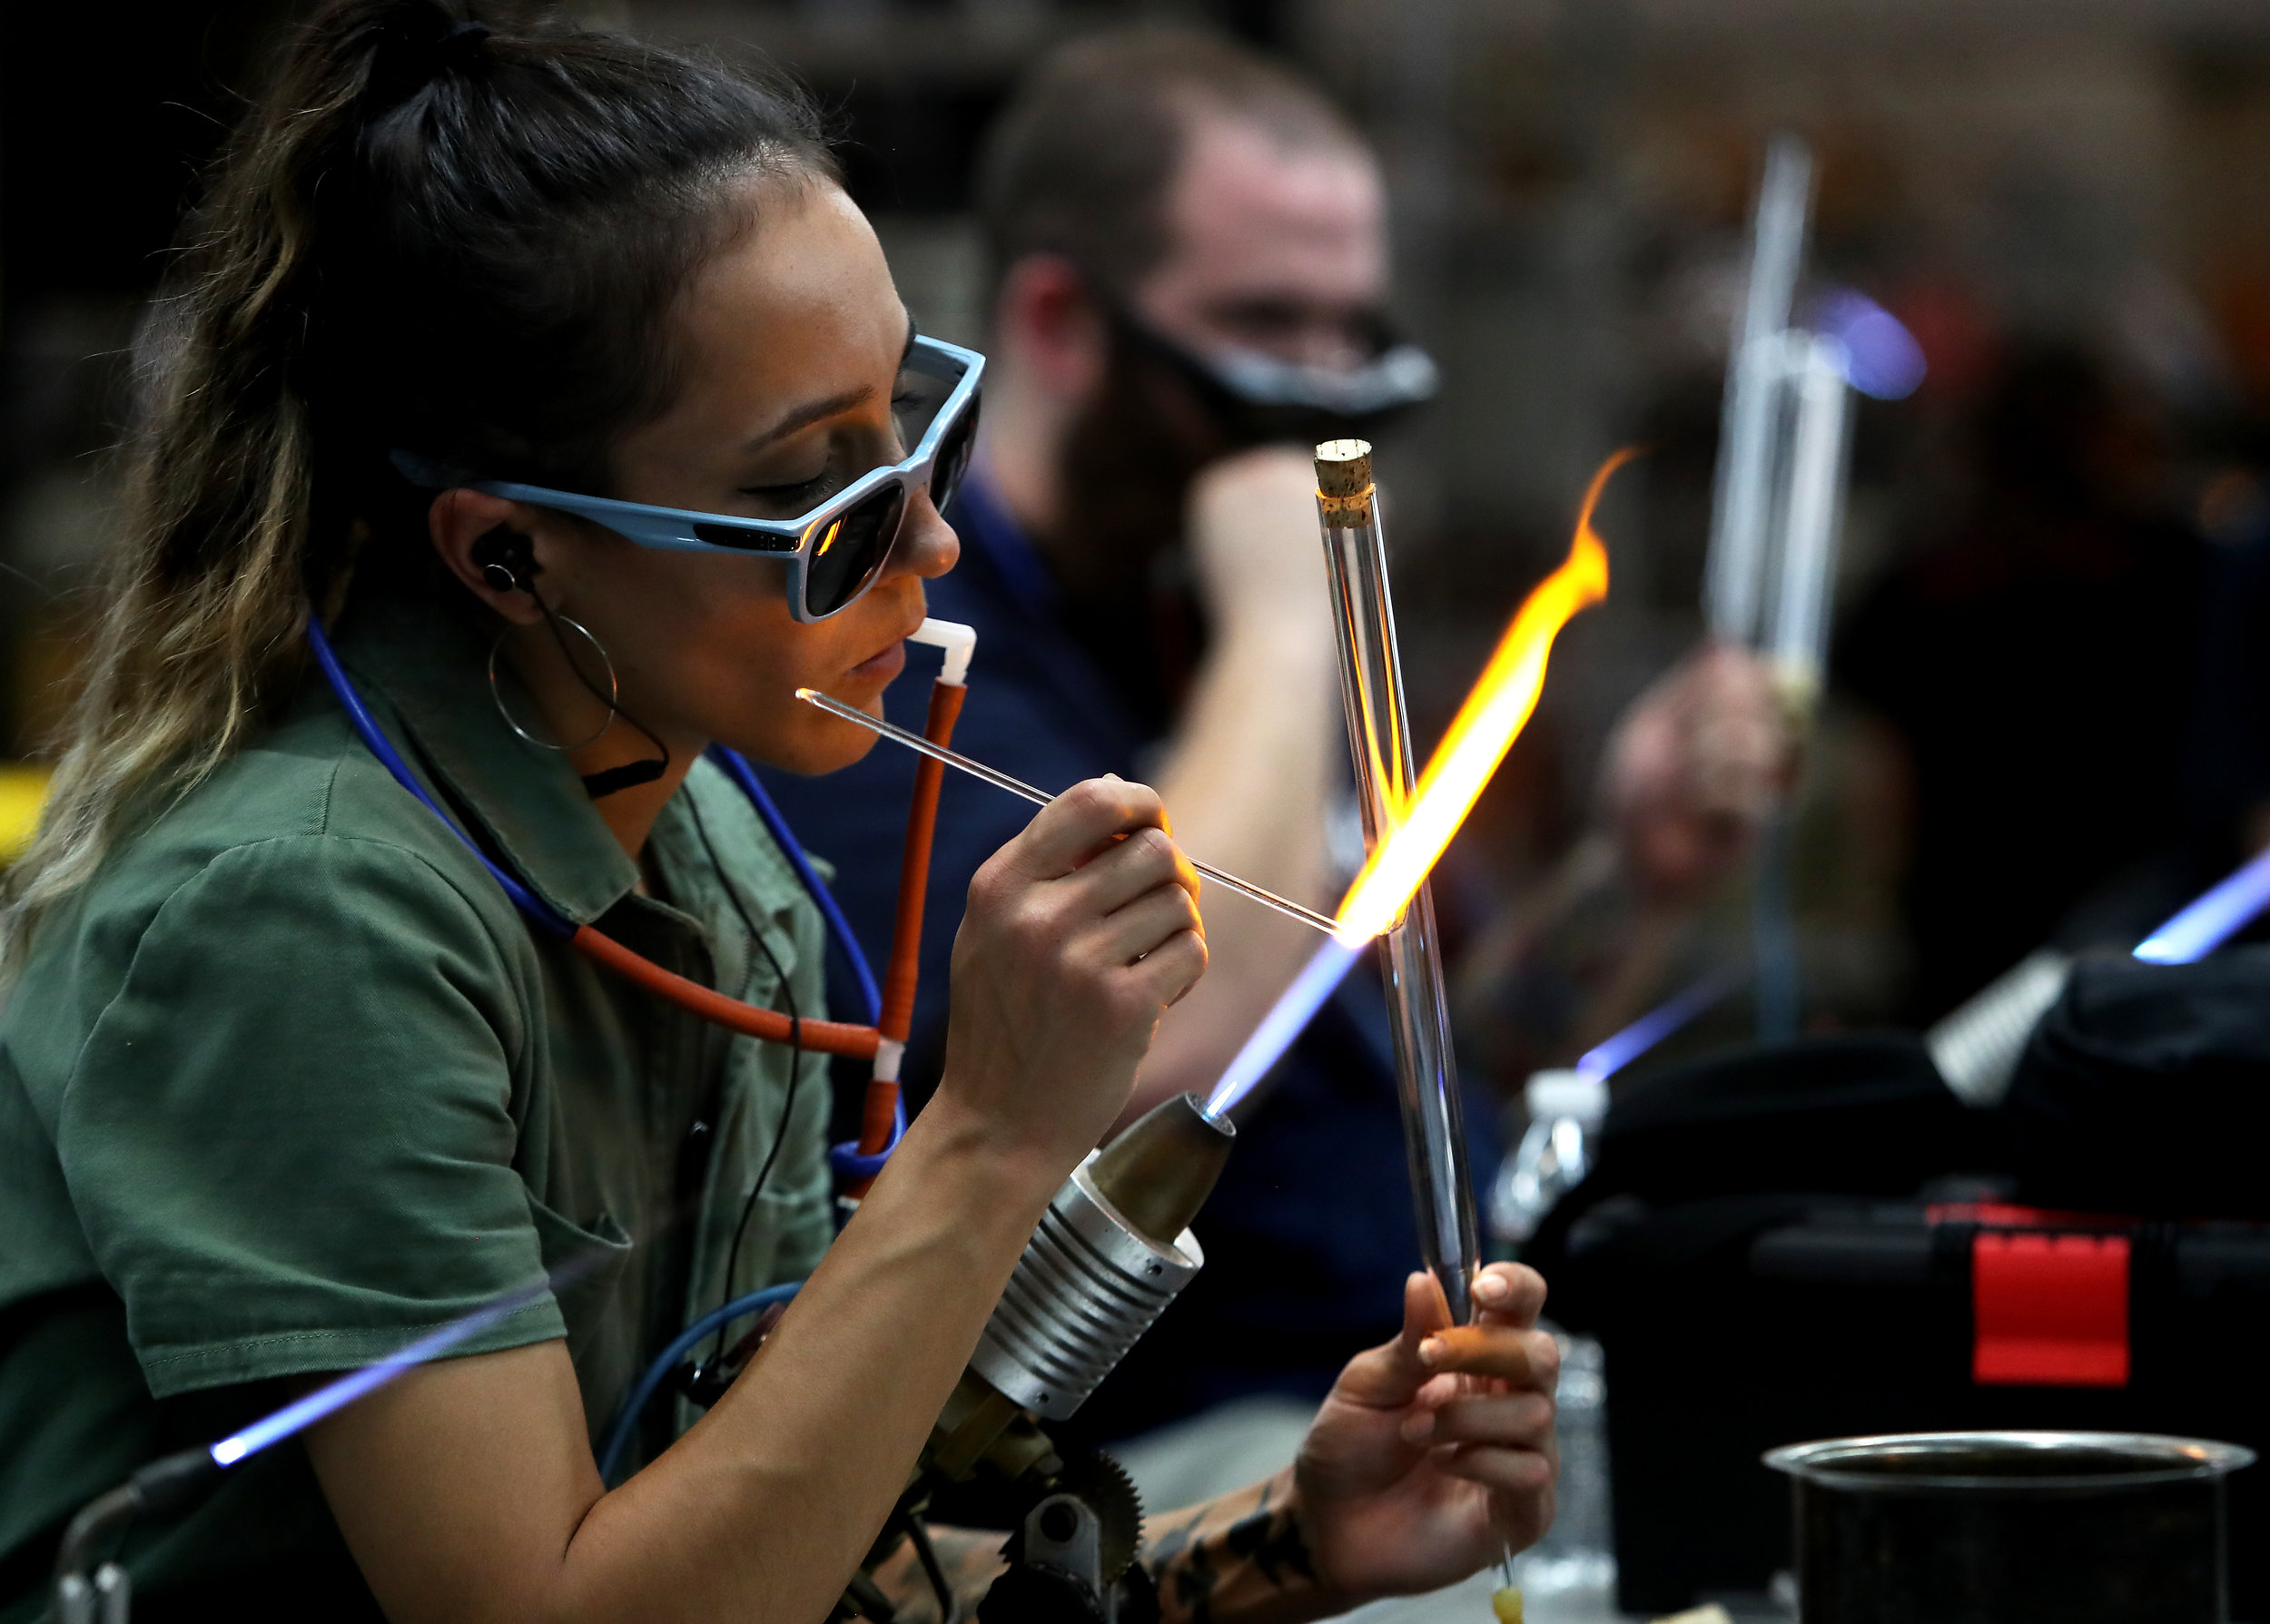 Scientific Glass Technology students develop a solid understanding of scientific glassblowing so they are able to fabricate apparatus according to technical specifications.